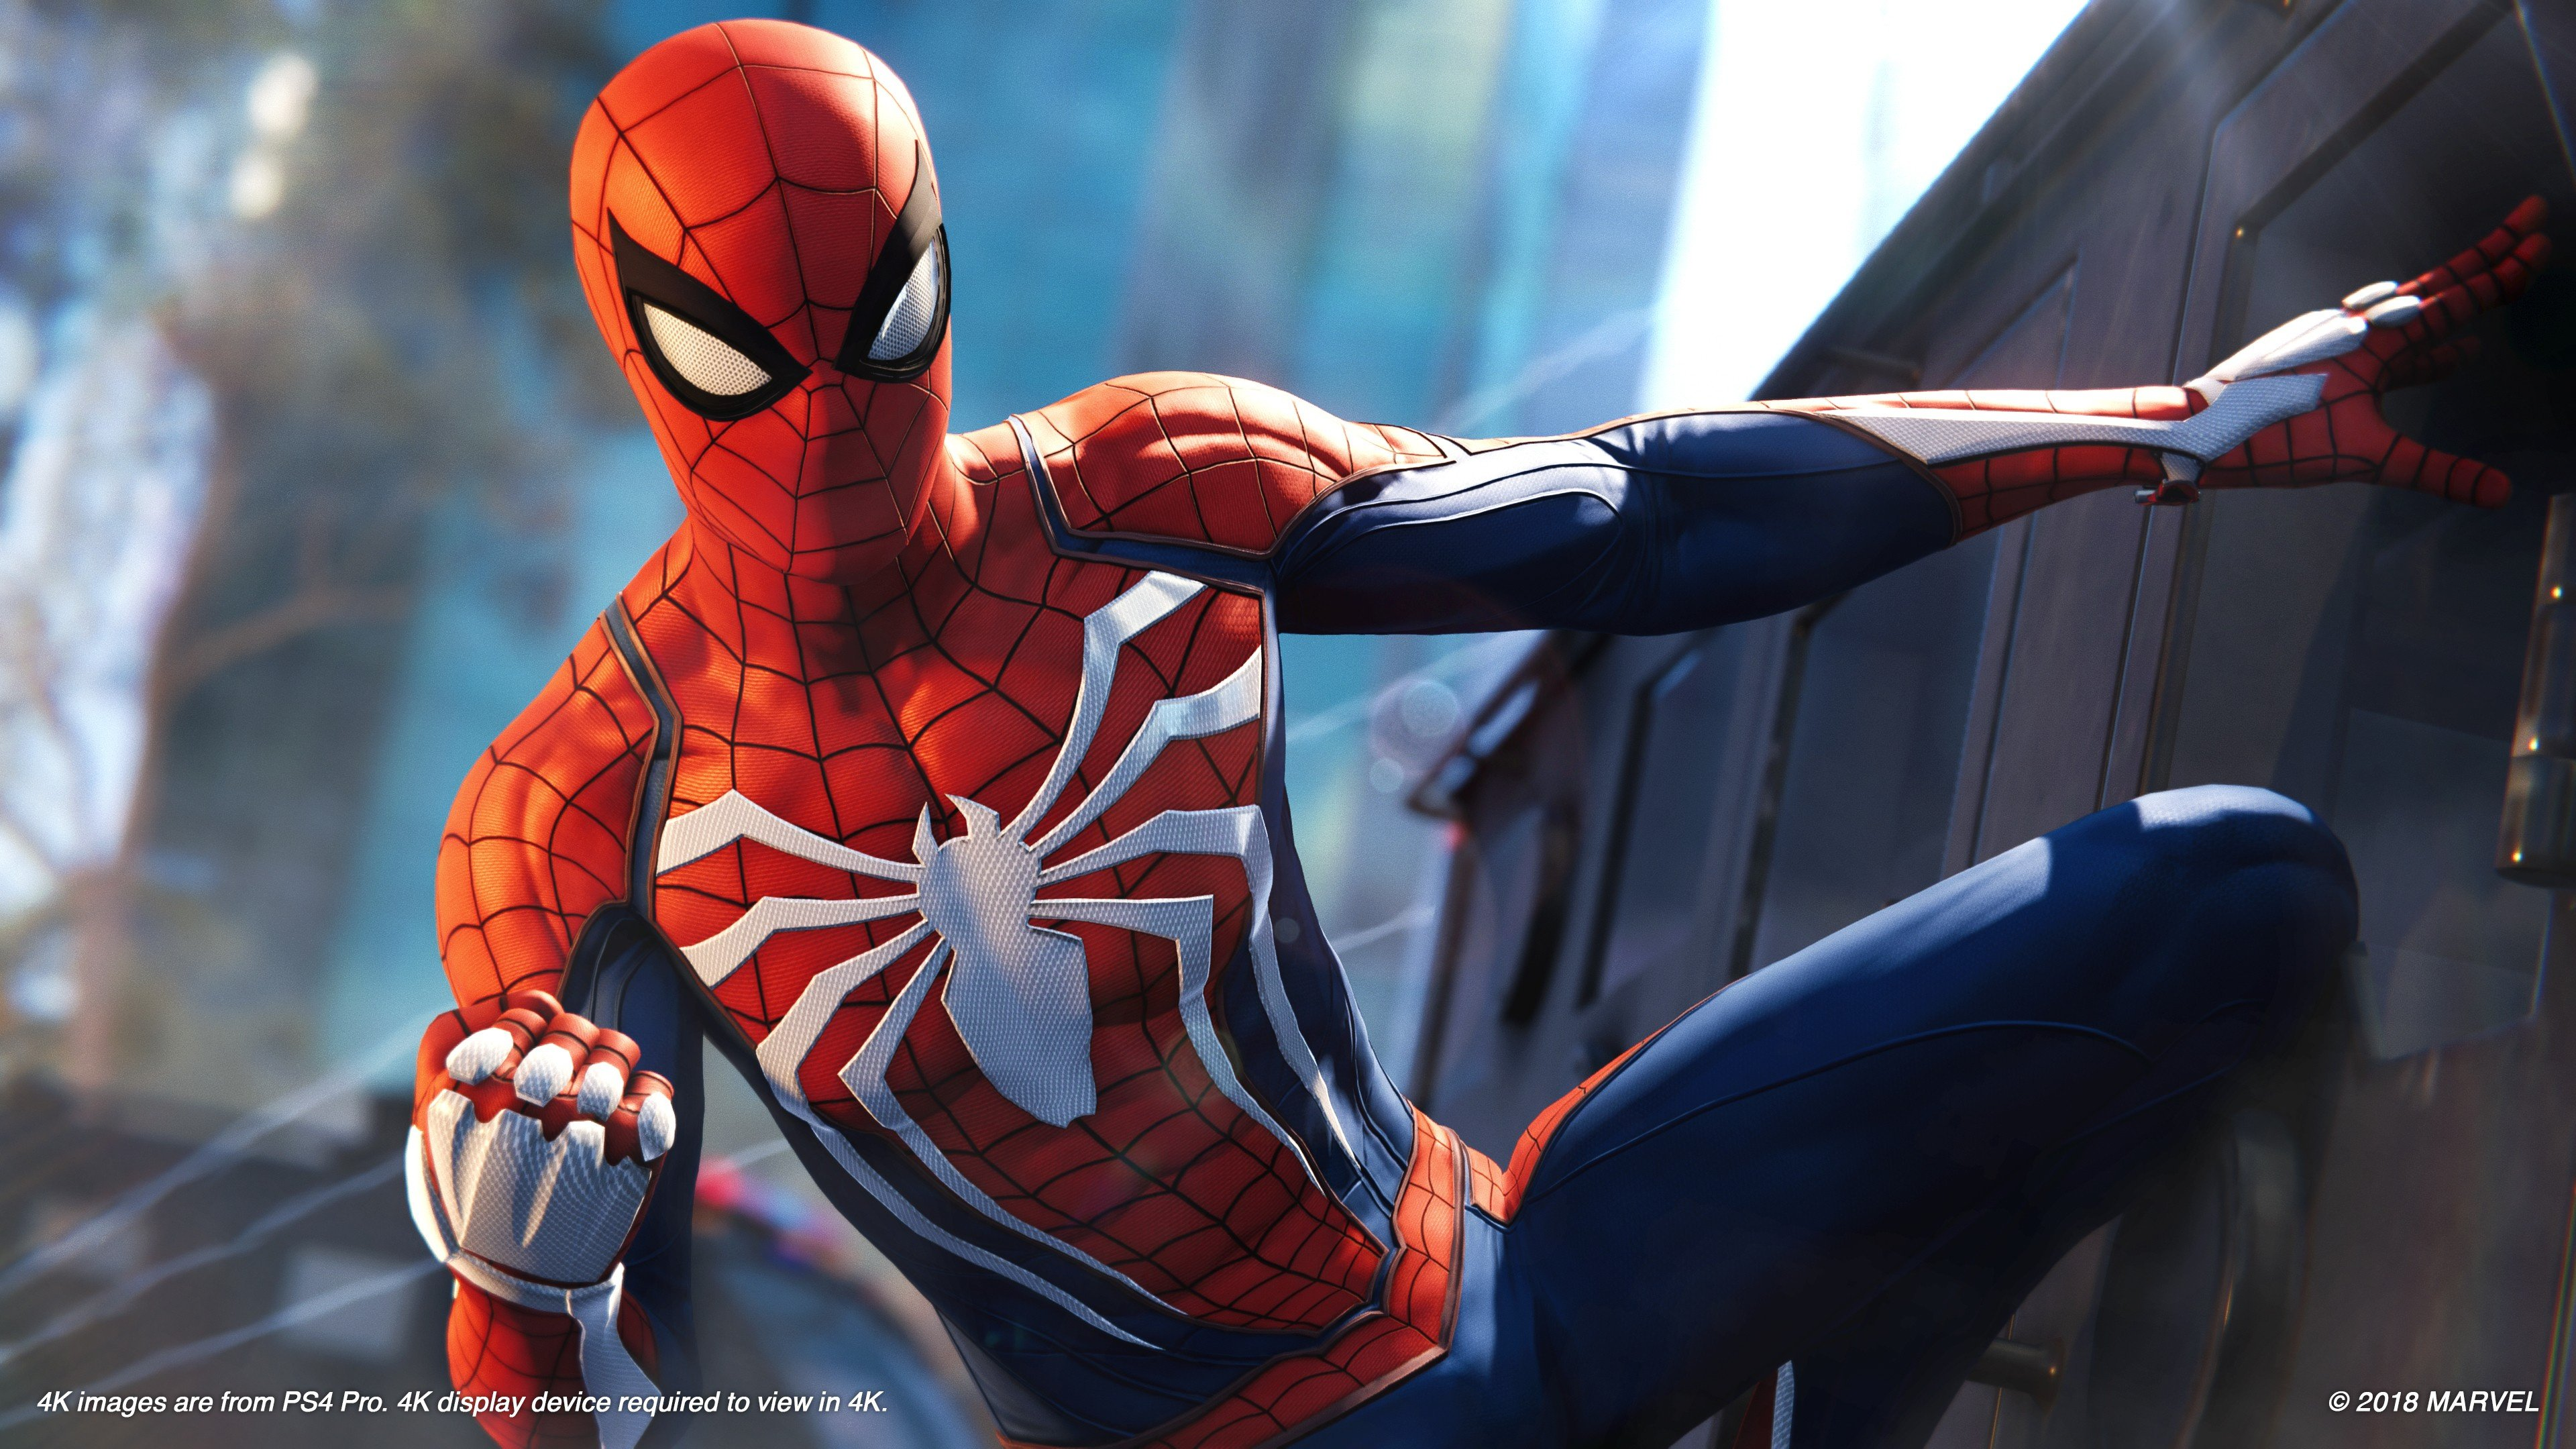 hands on: marvel's spider-man on ps4 is shaping up to be the best